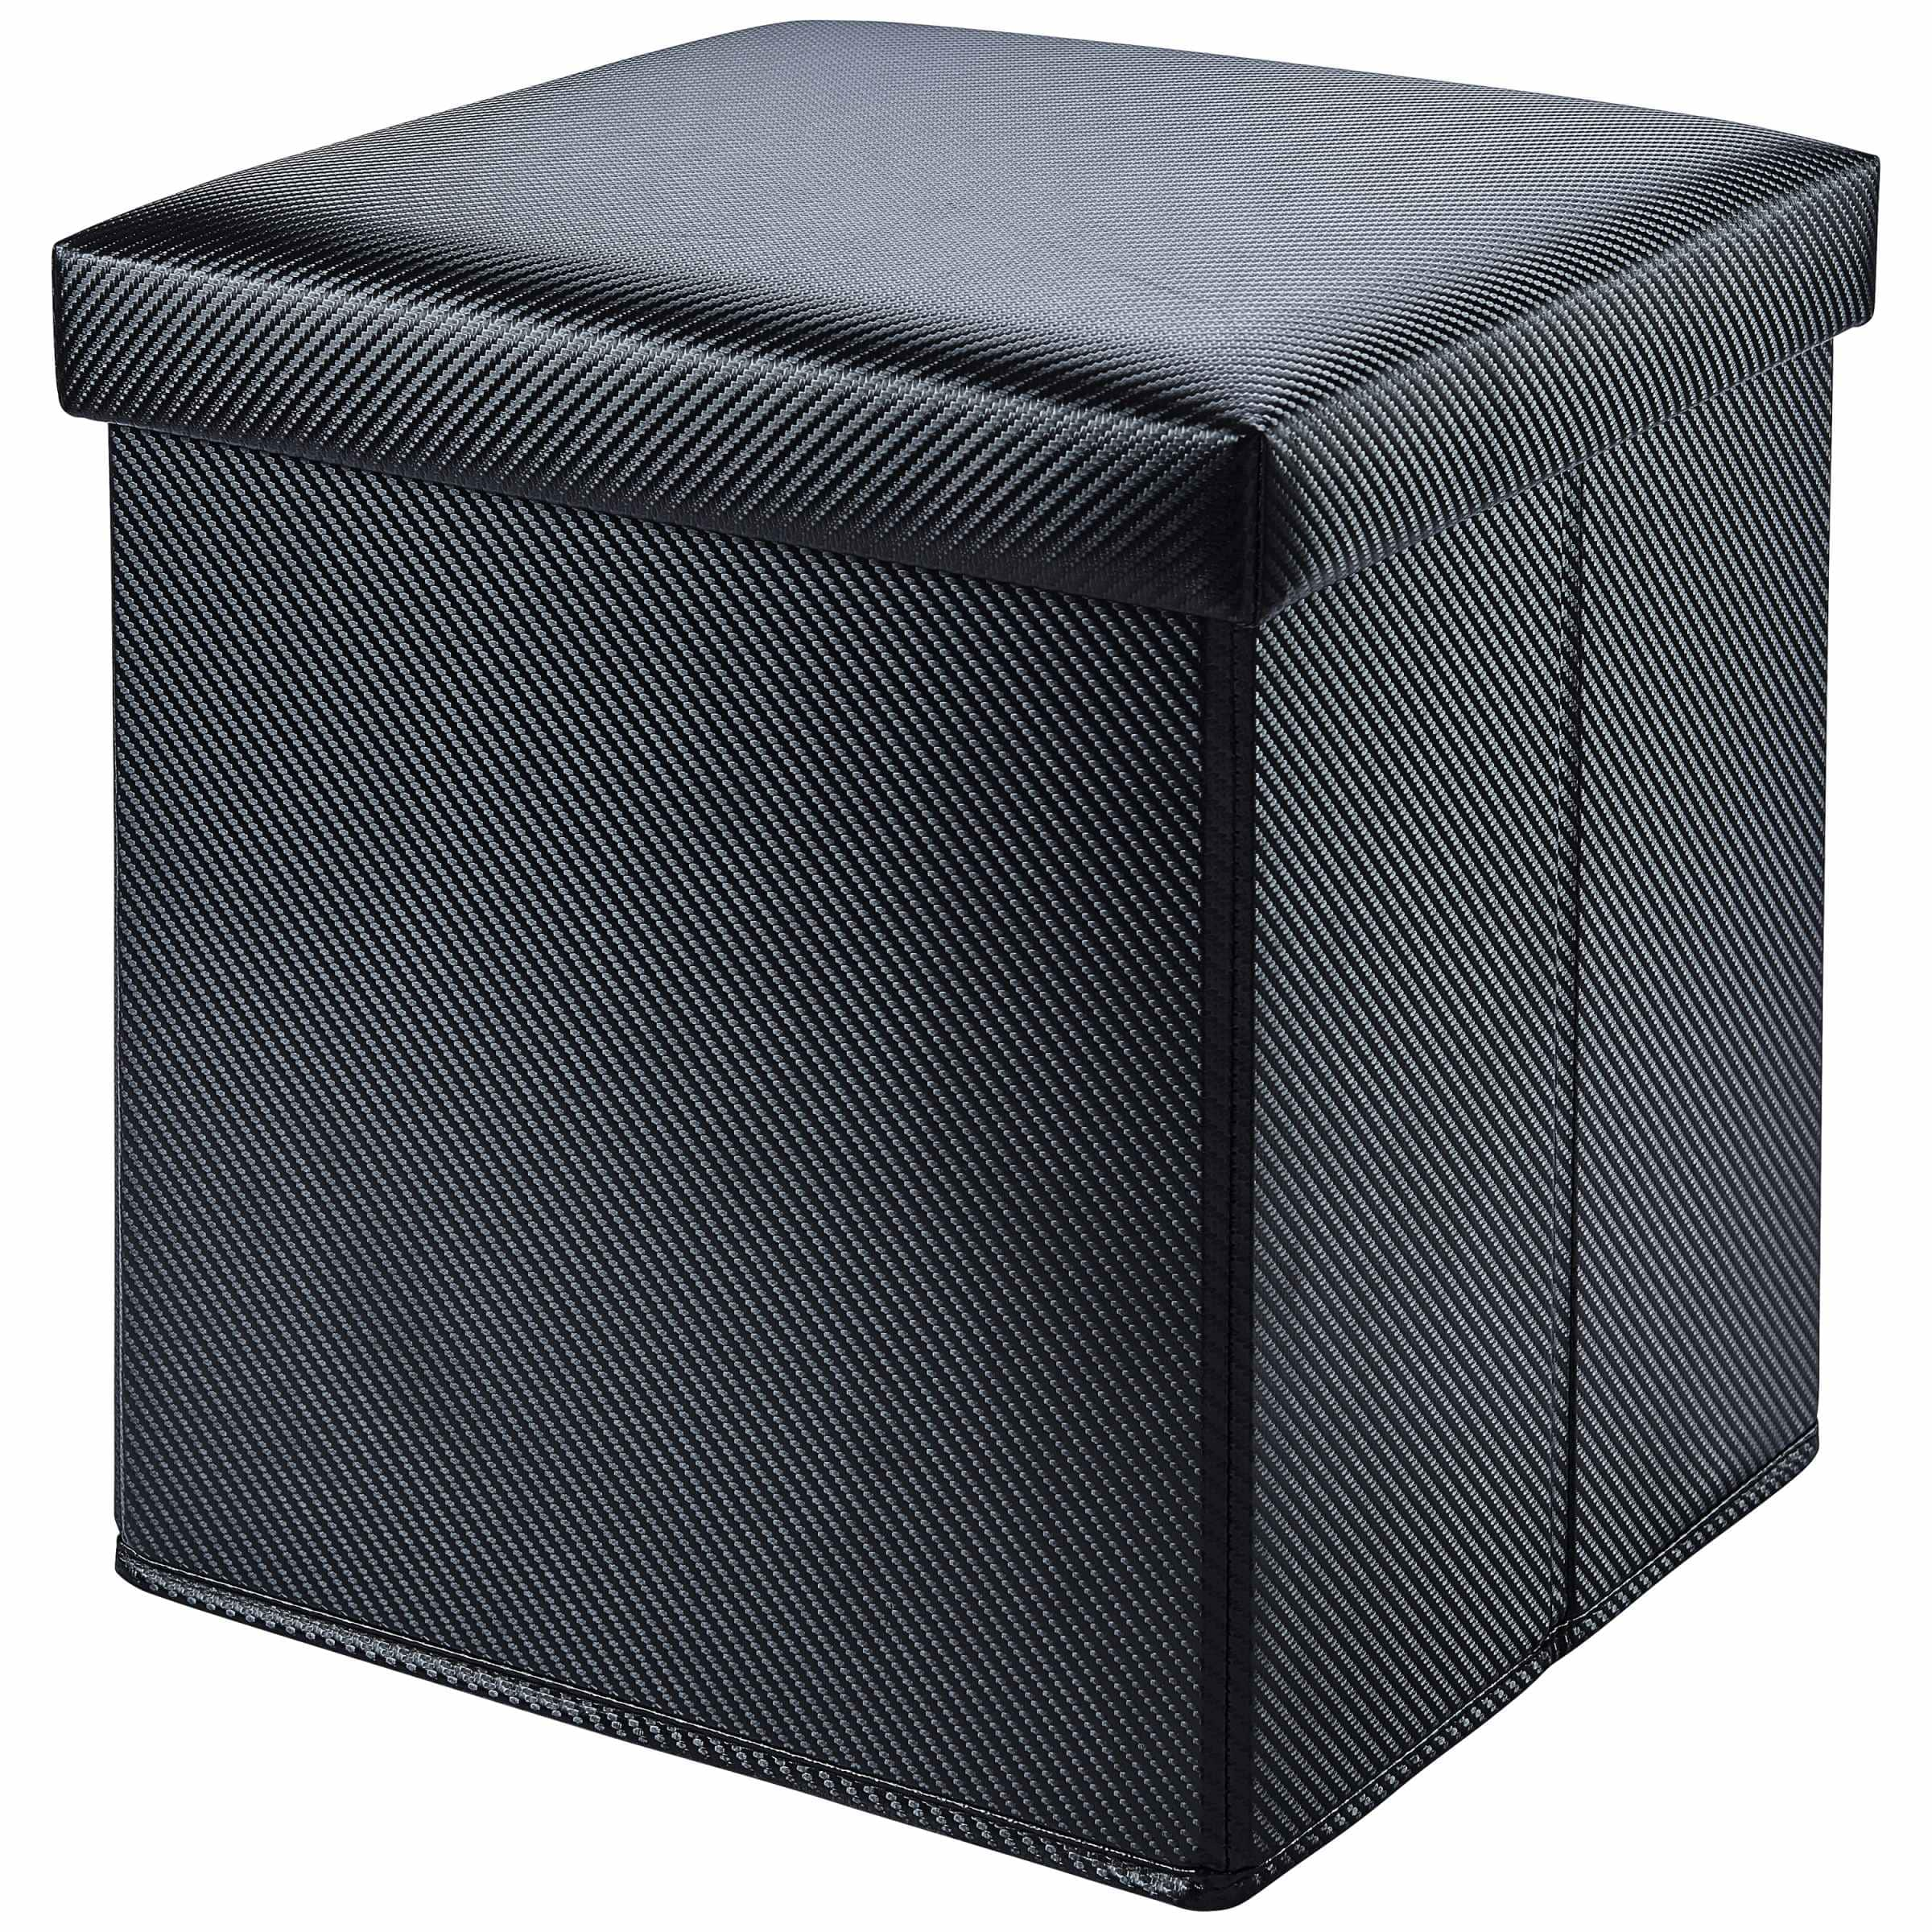 Mainstays Collapsible Storage Ottoman (Carbon Black) $8 + Free Store Pickup